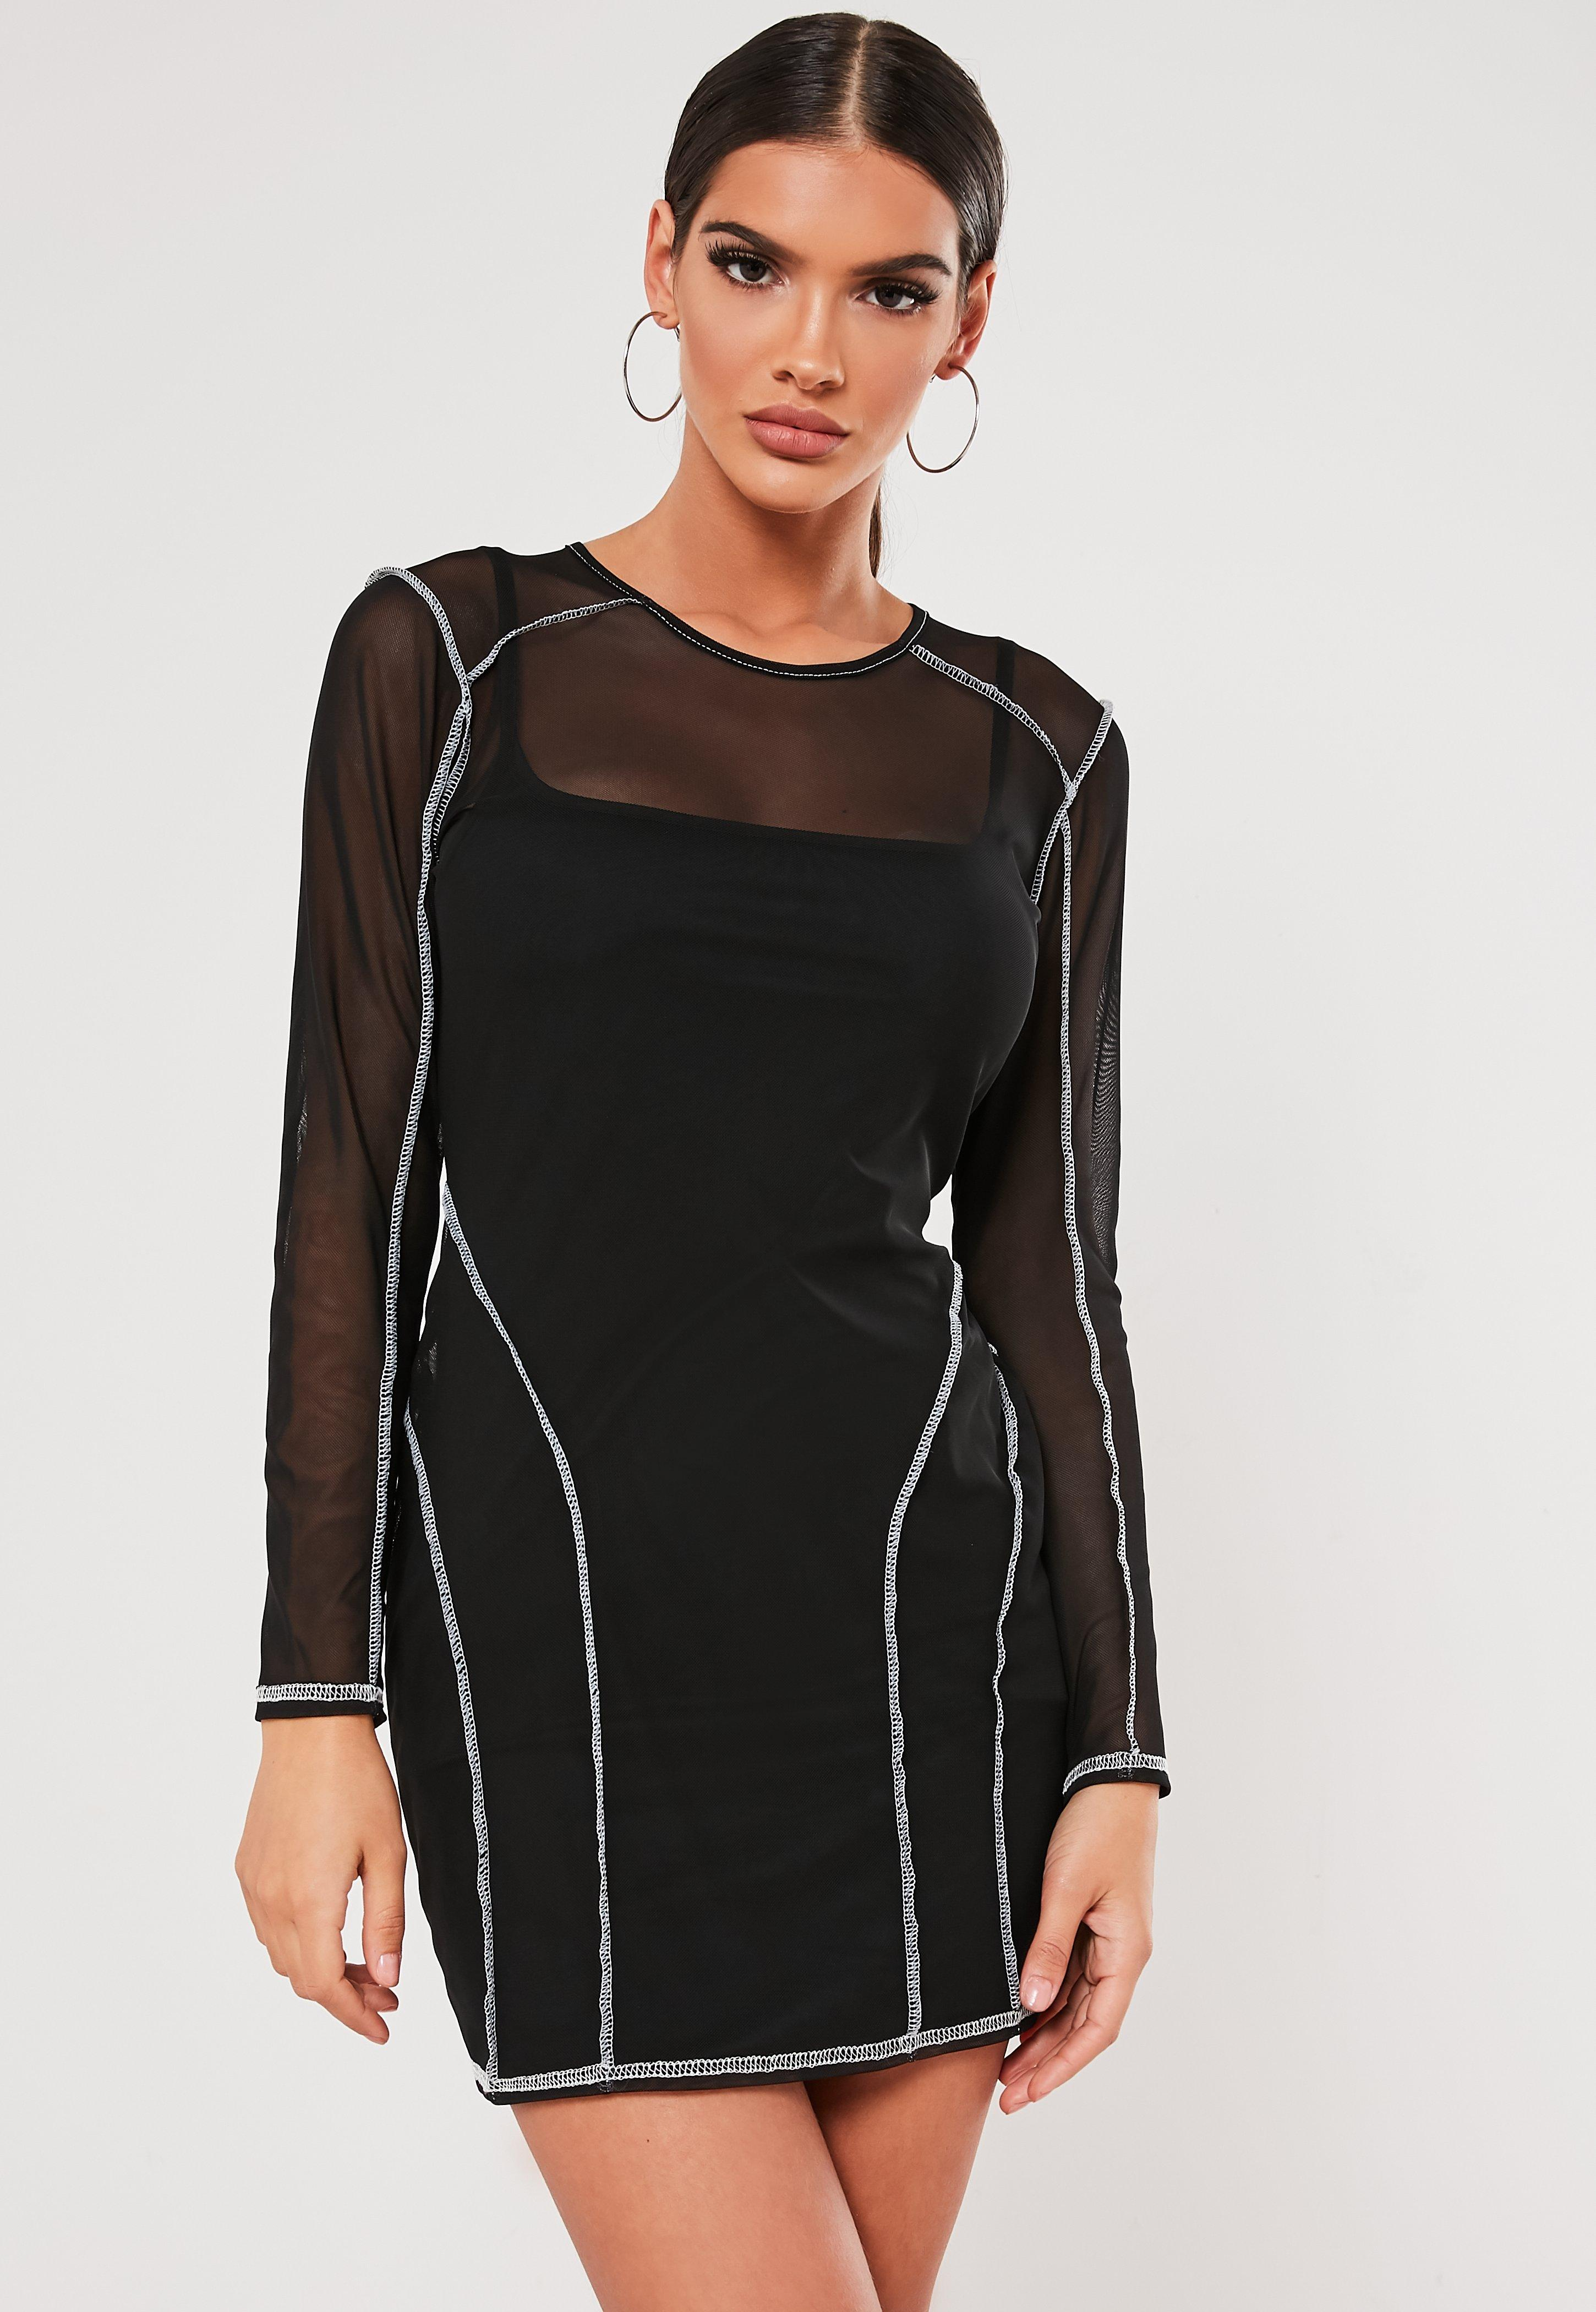 cf096e98f3e4a Robe manches longues pour femme - Missguided